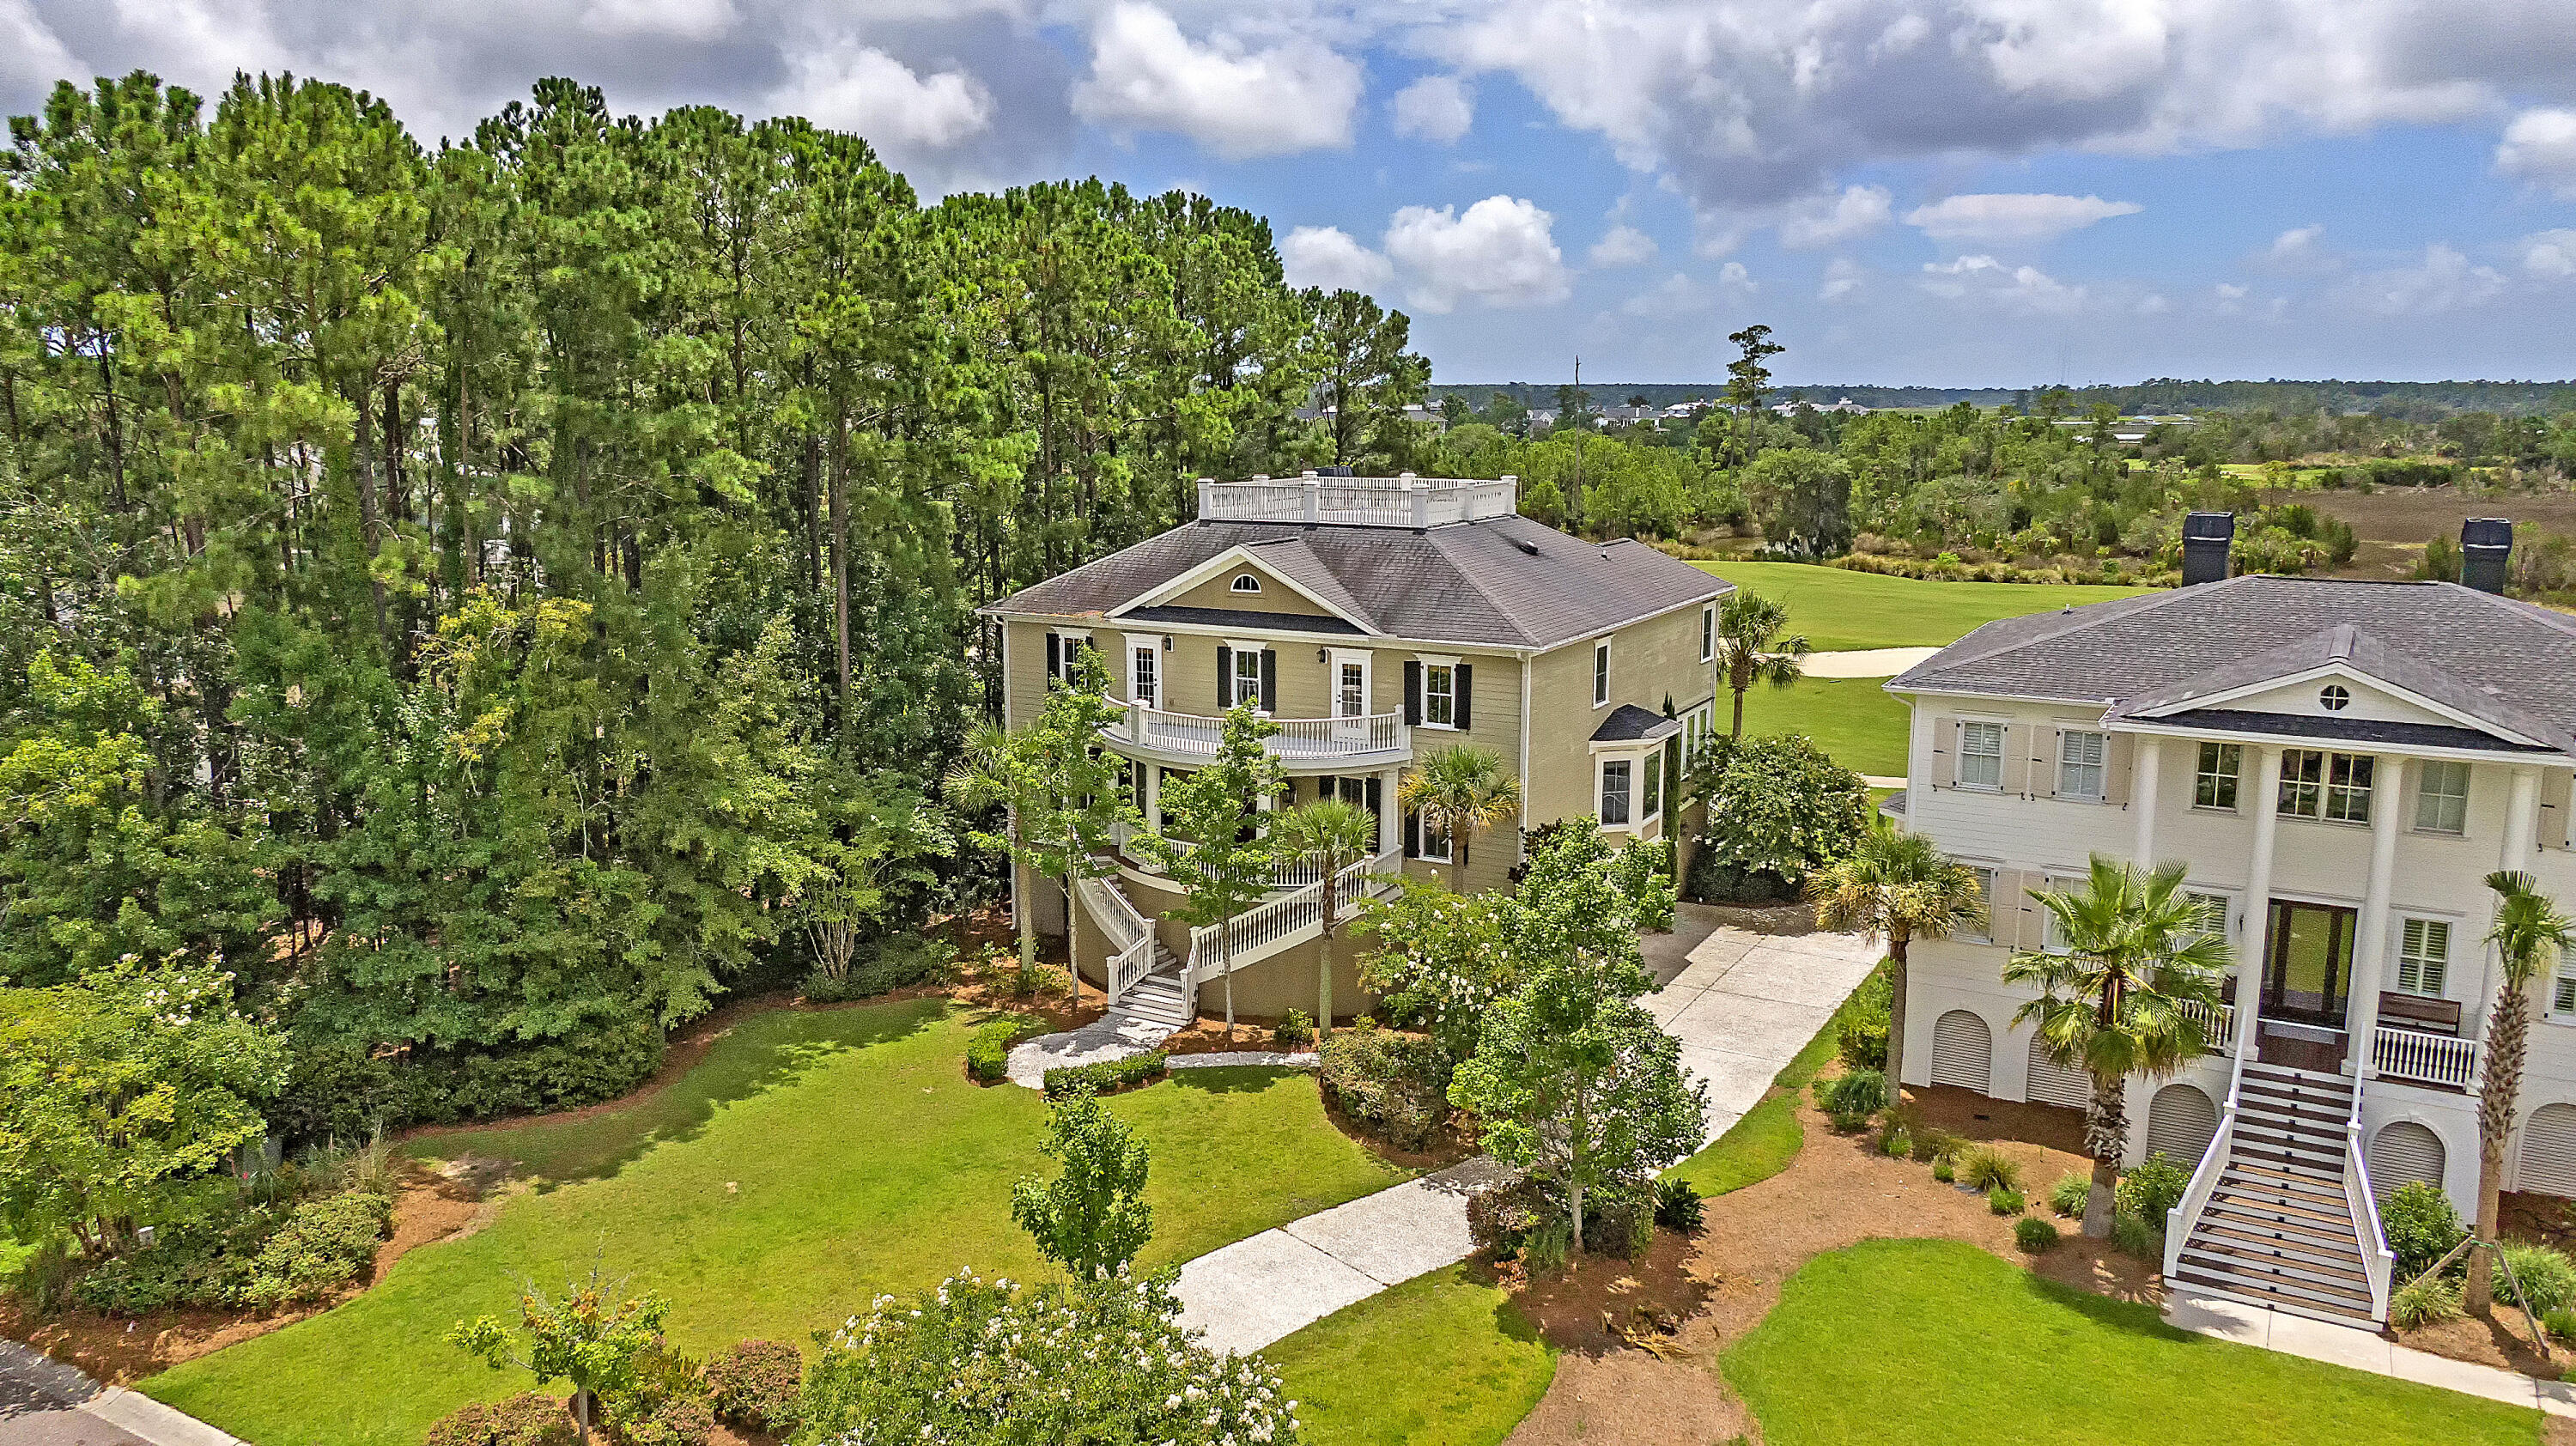 Rivertowne Country Club Homes For Sale - 1632 Rivertowne Country Club, Mount Pleasant, SC - 7